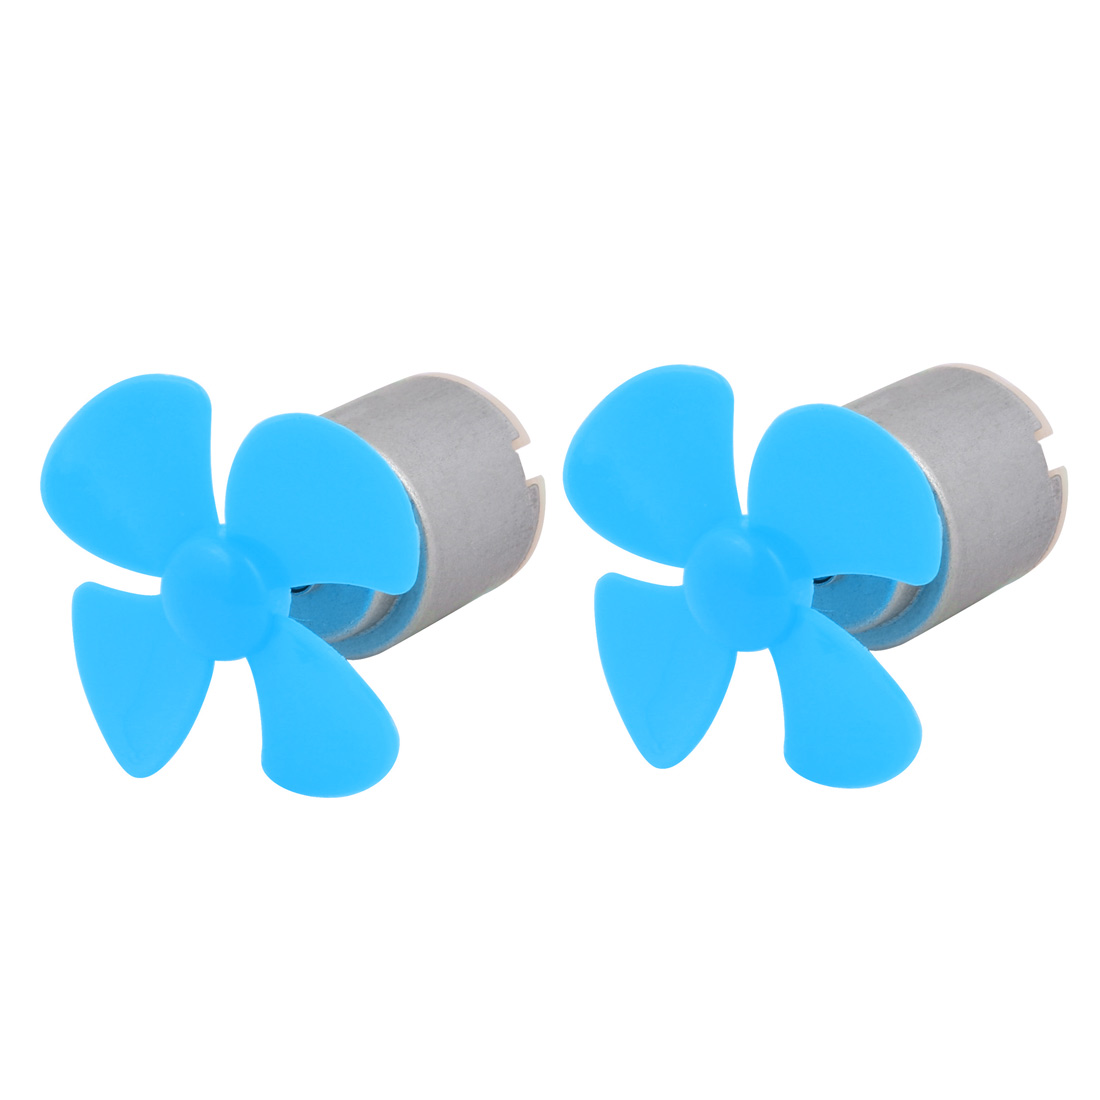 2Pcs DC 1.5V 0.13A 3800RPM Large Torque Motor 4 Vanes 40mm Dia Propeller Blue for RC Model